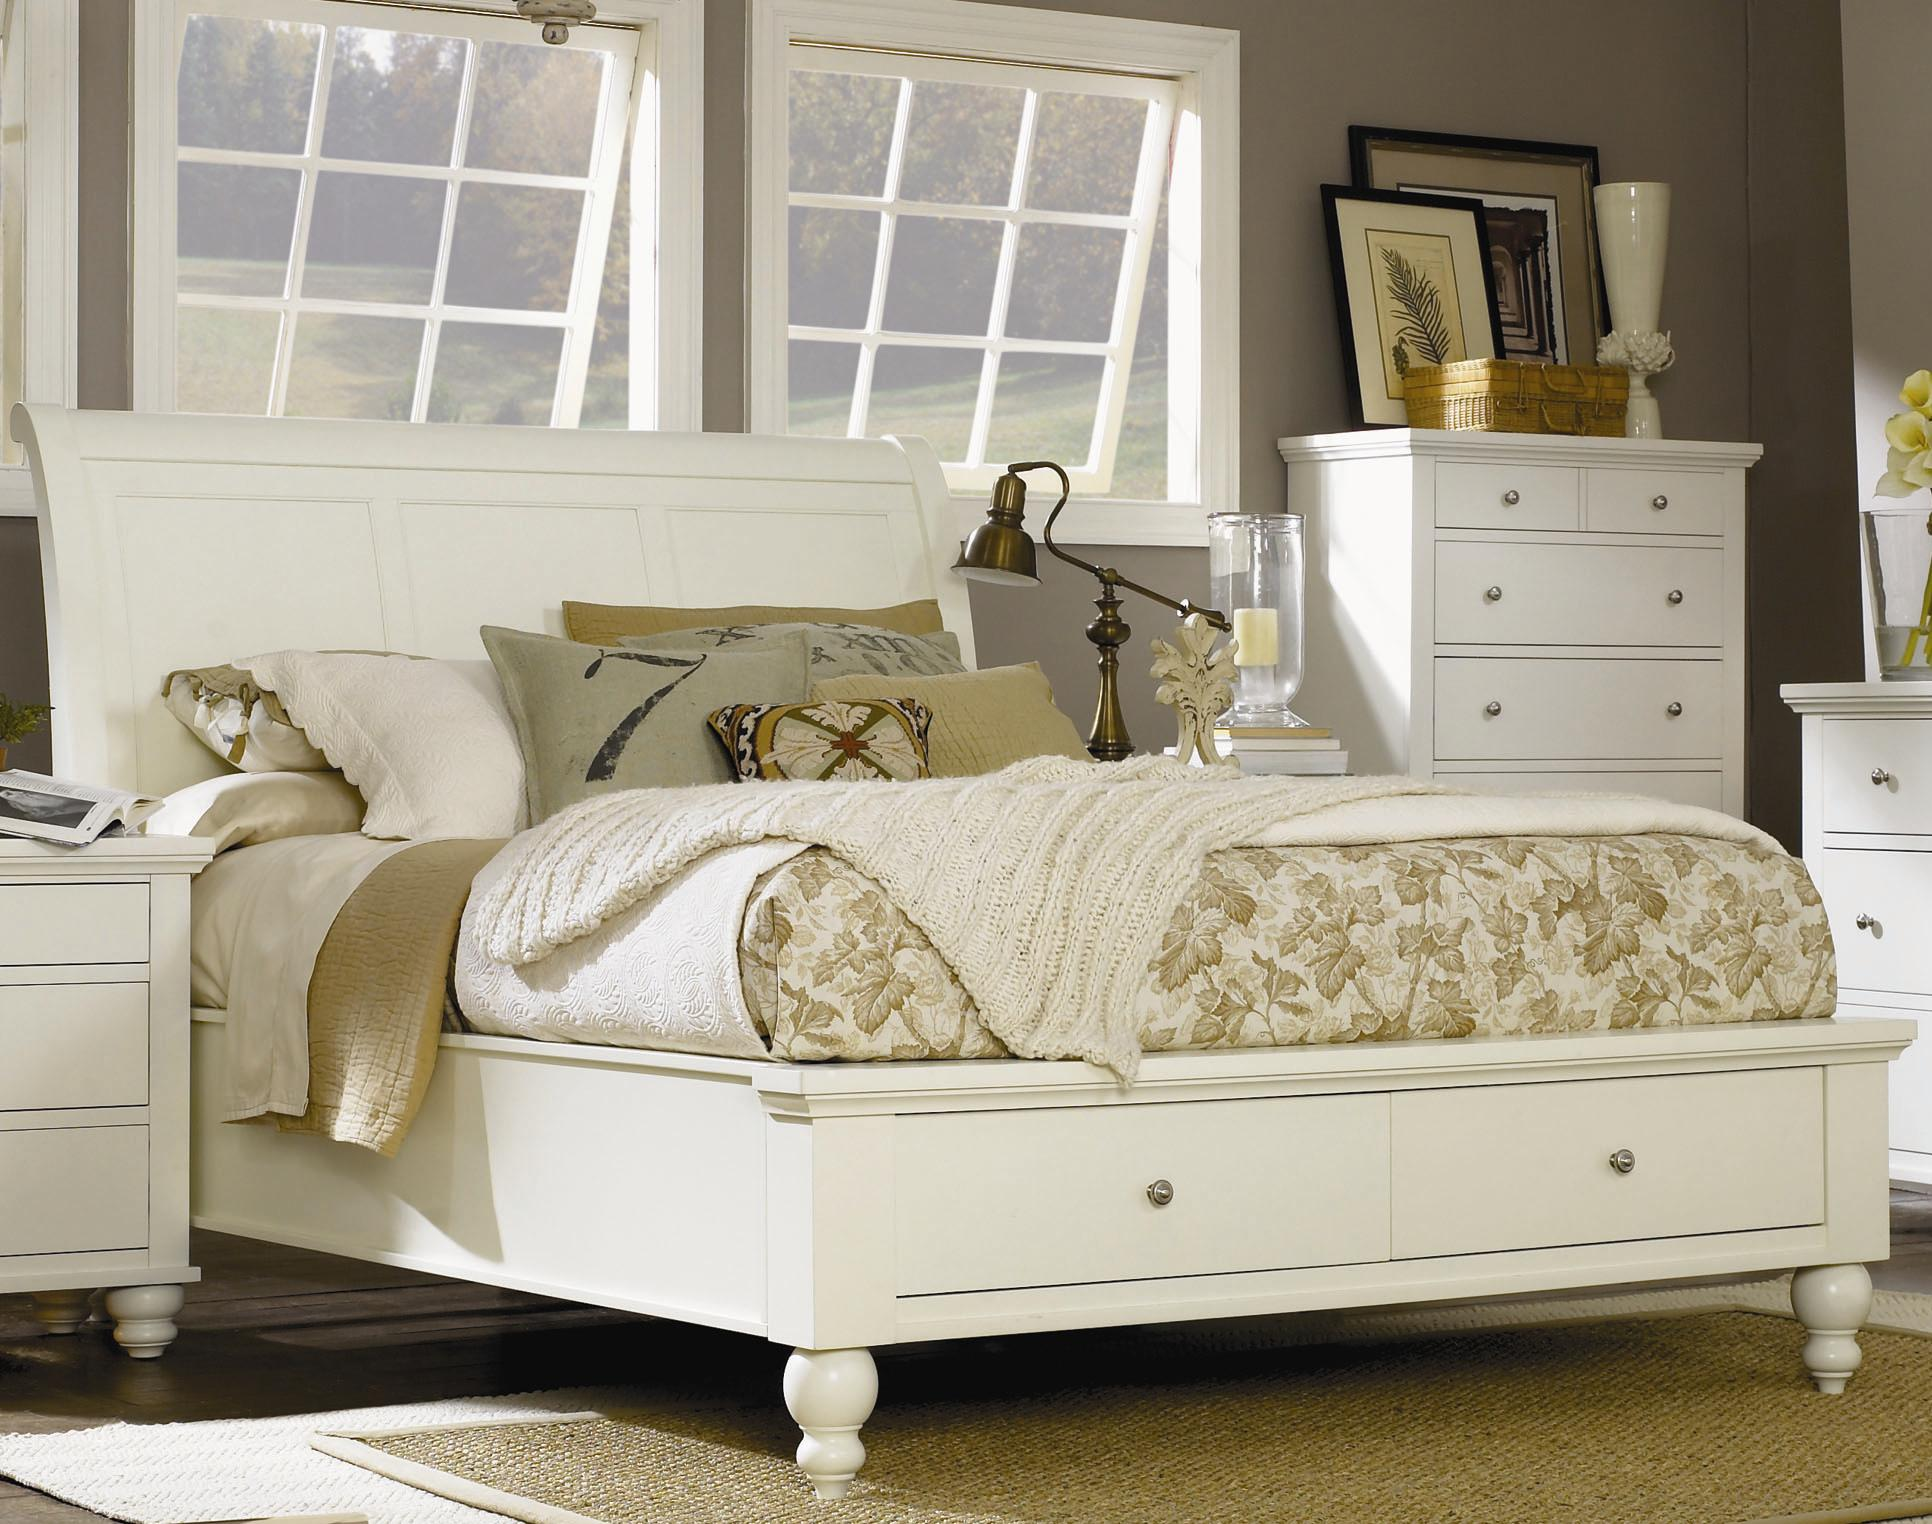 Clinton Clinton Sleigh Bed with Storage  by Aspenhome at Morris Home